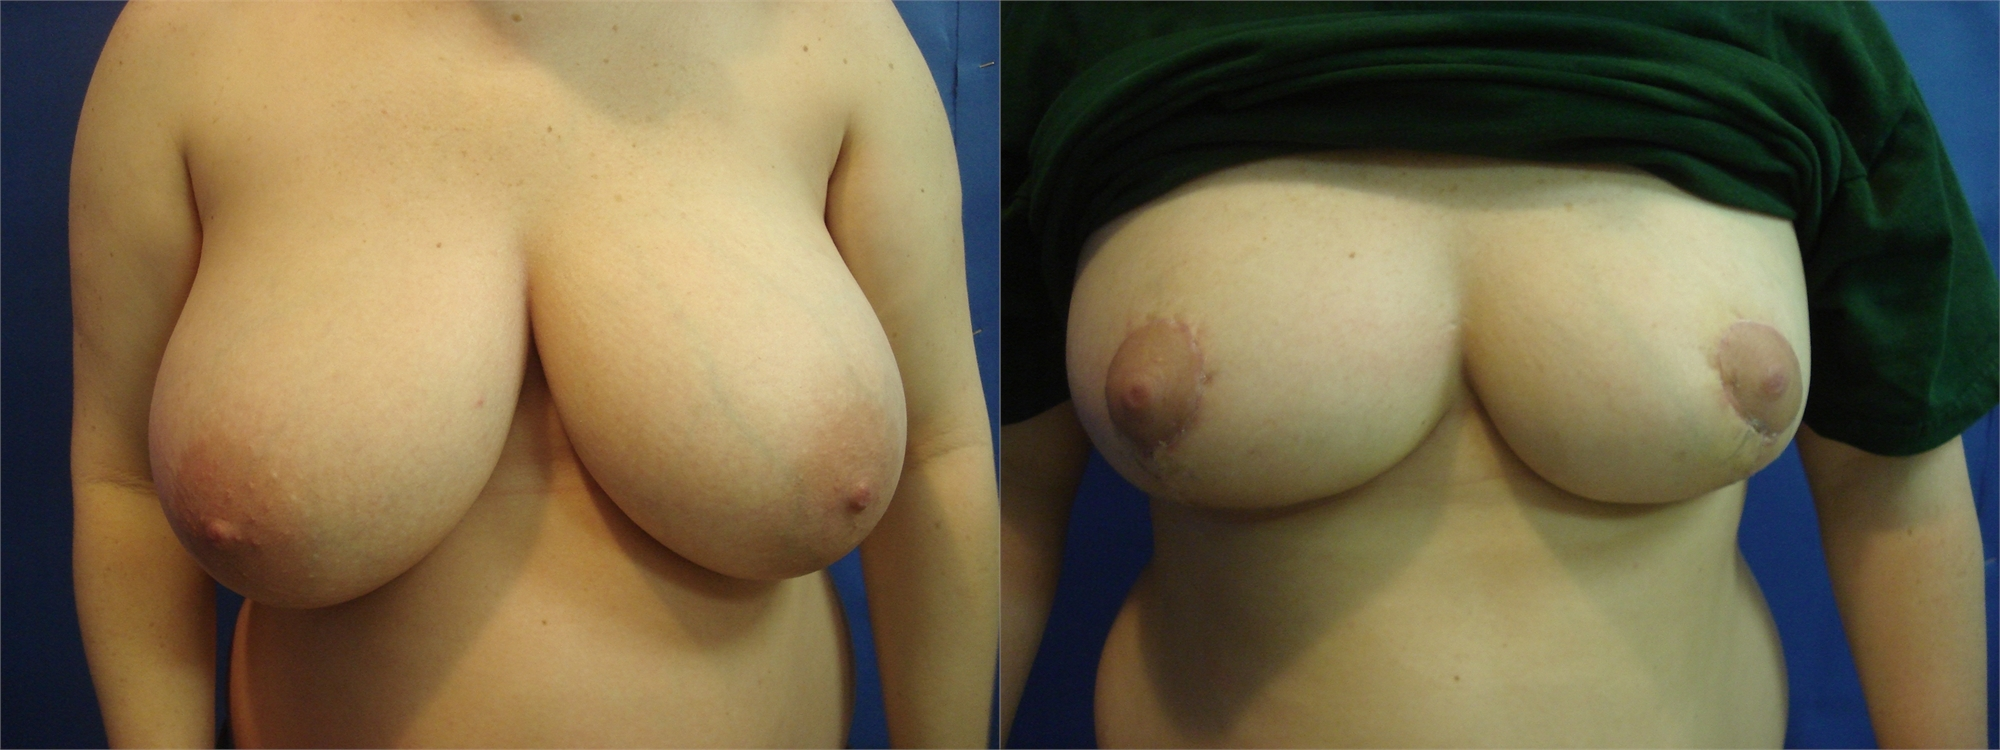 Breast Lift Before and After Tacoma, WA